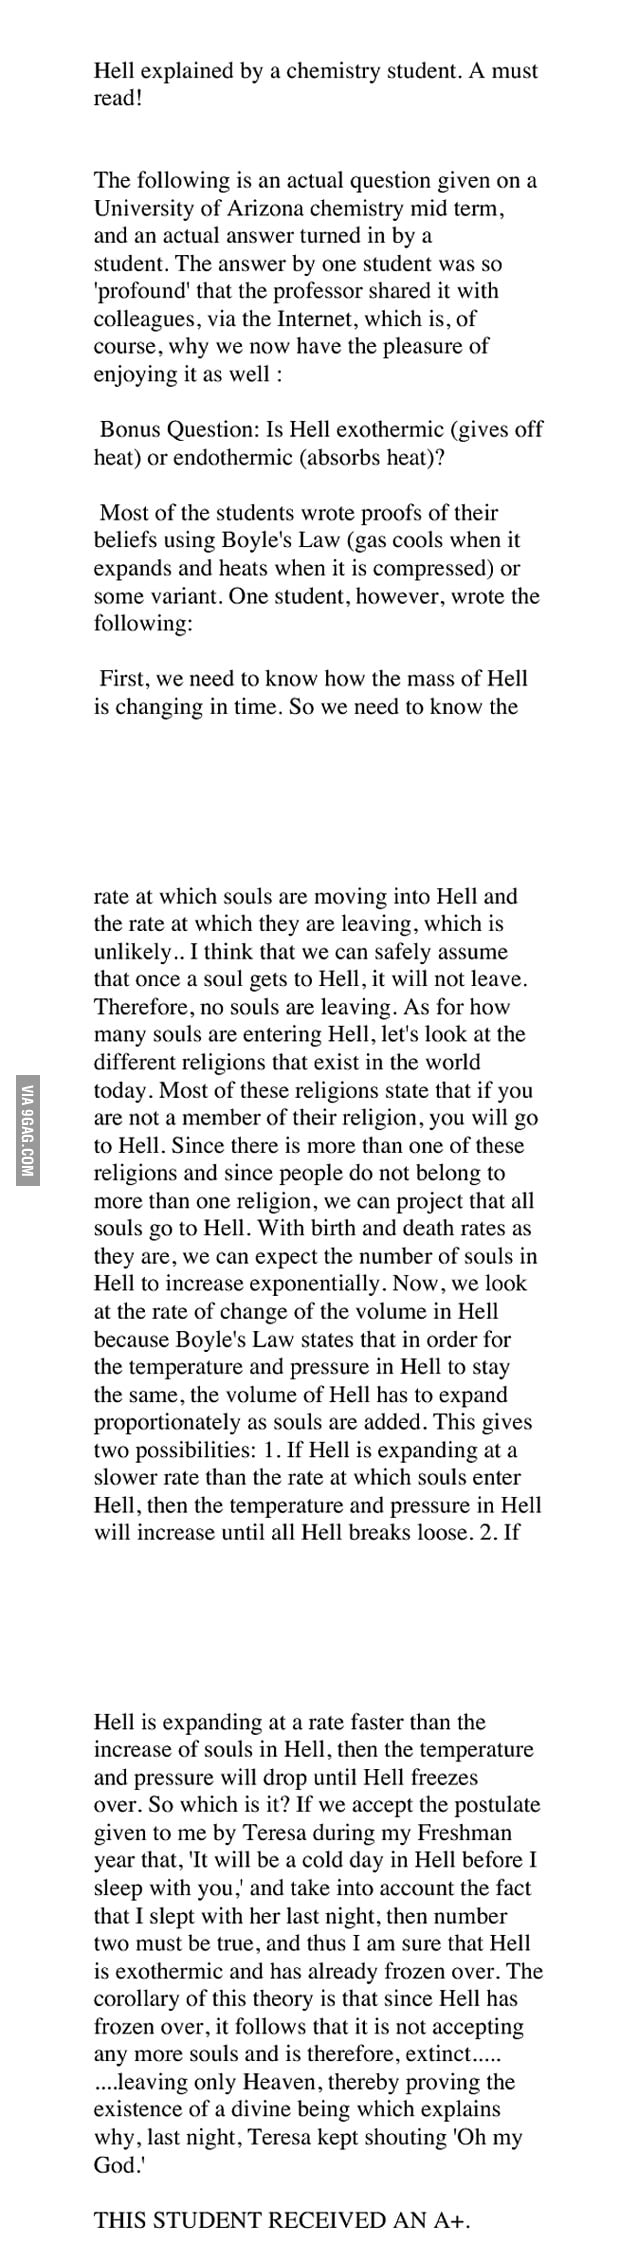 Hell explained by a chemistry student 9gag for Architecture students 9gag